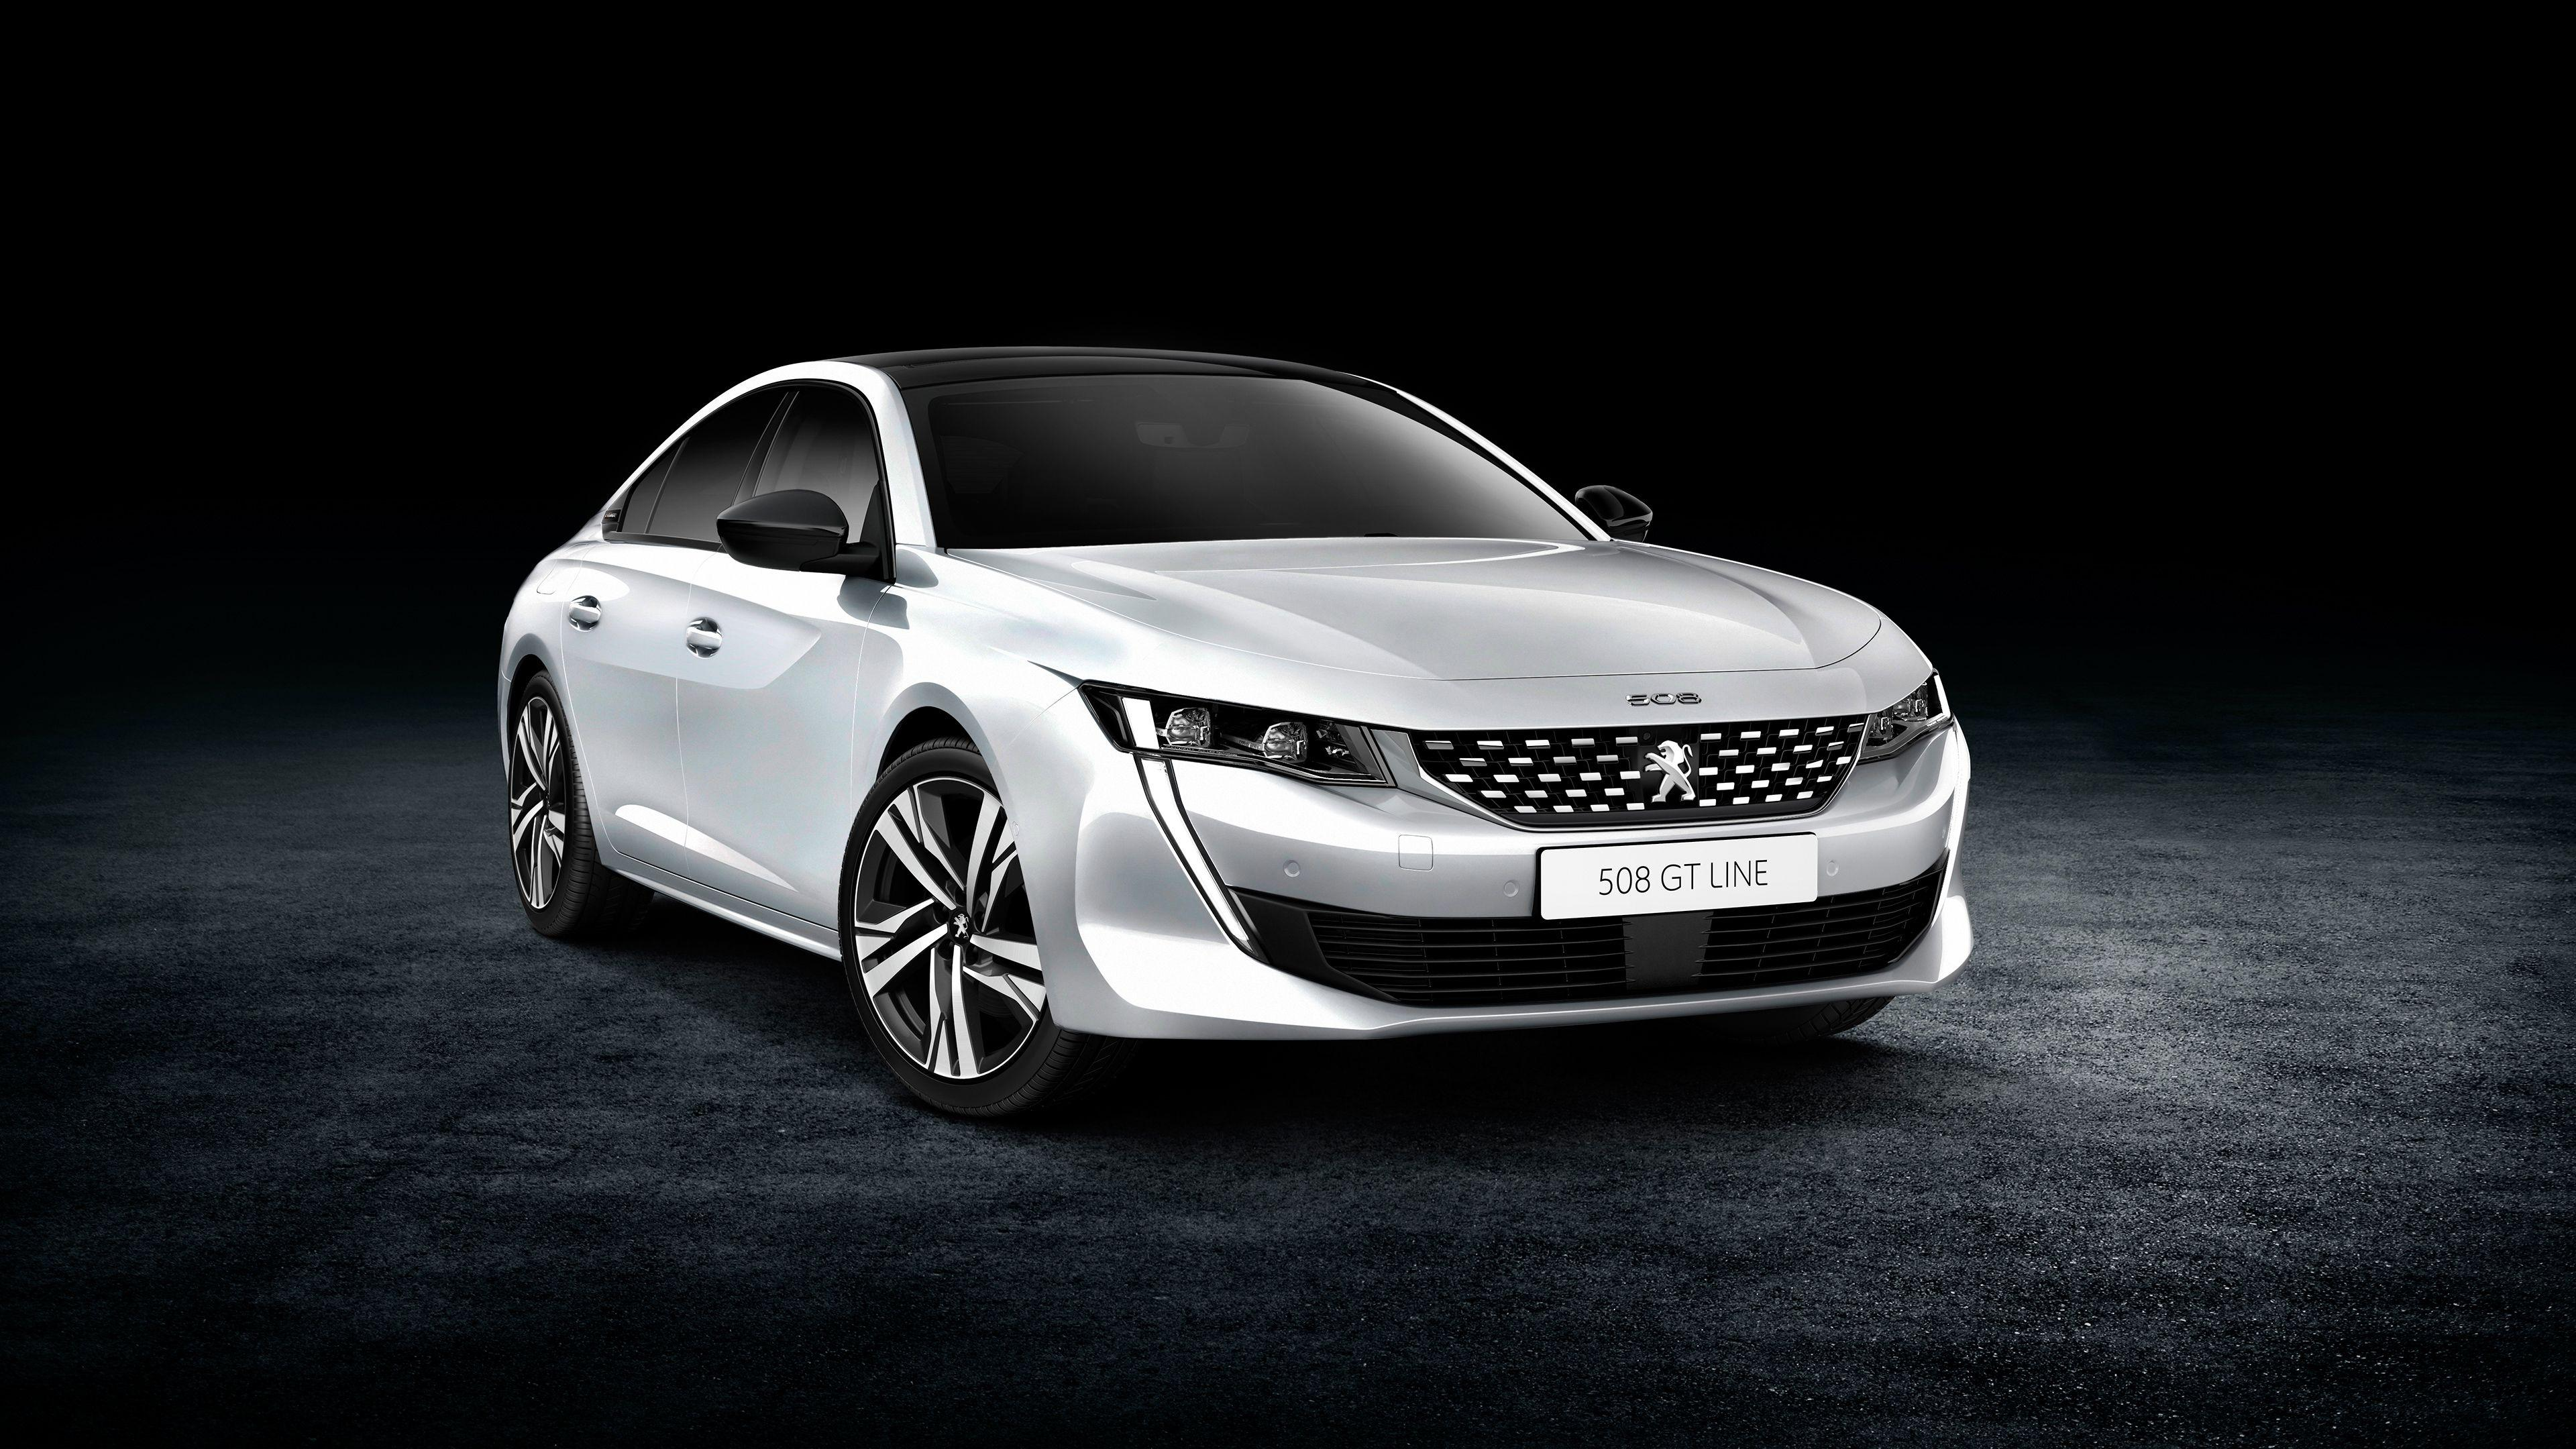 2018 Peugeot 508 GT Line 4K Wallpapers